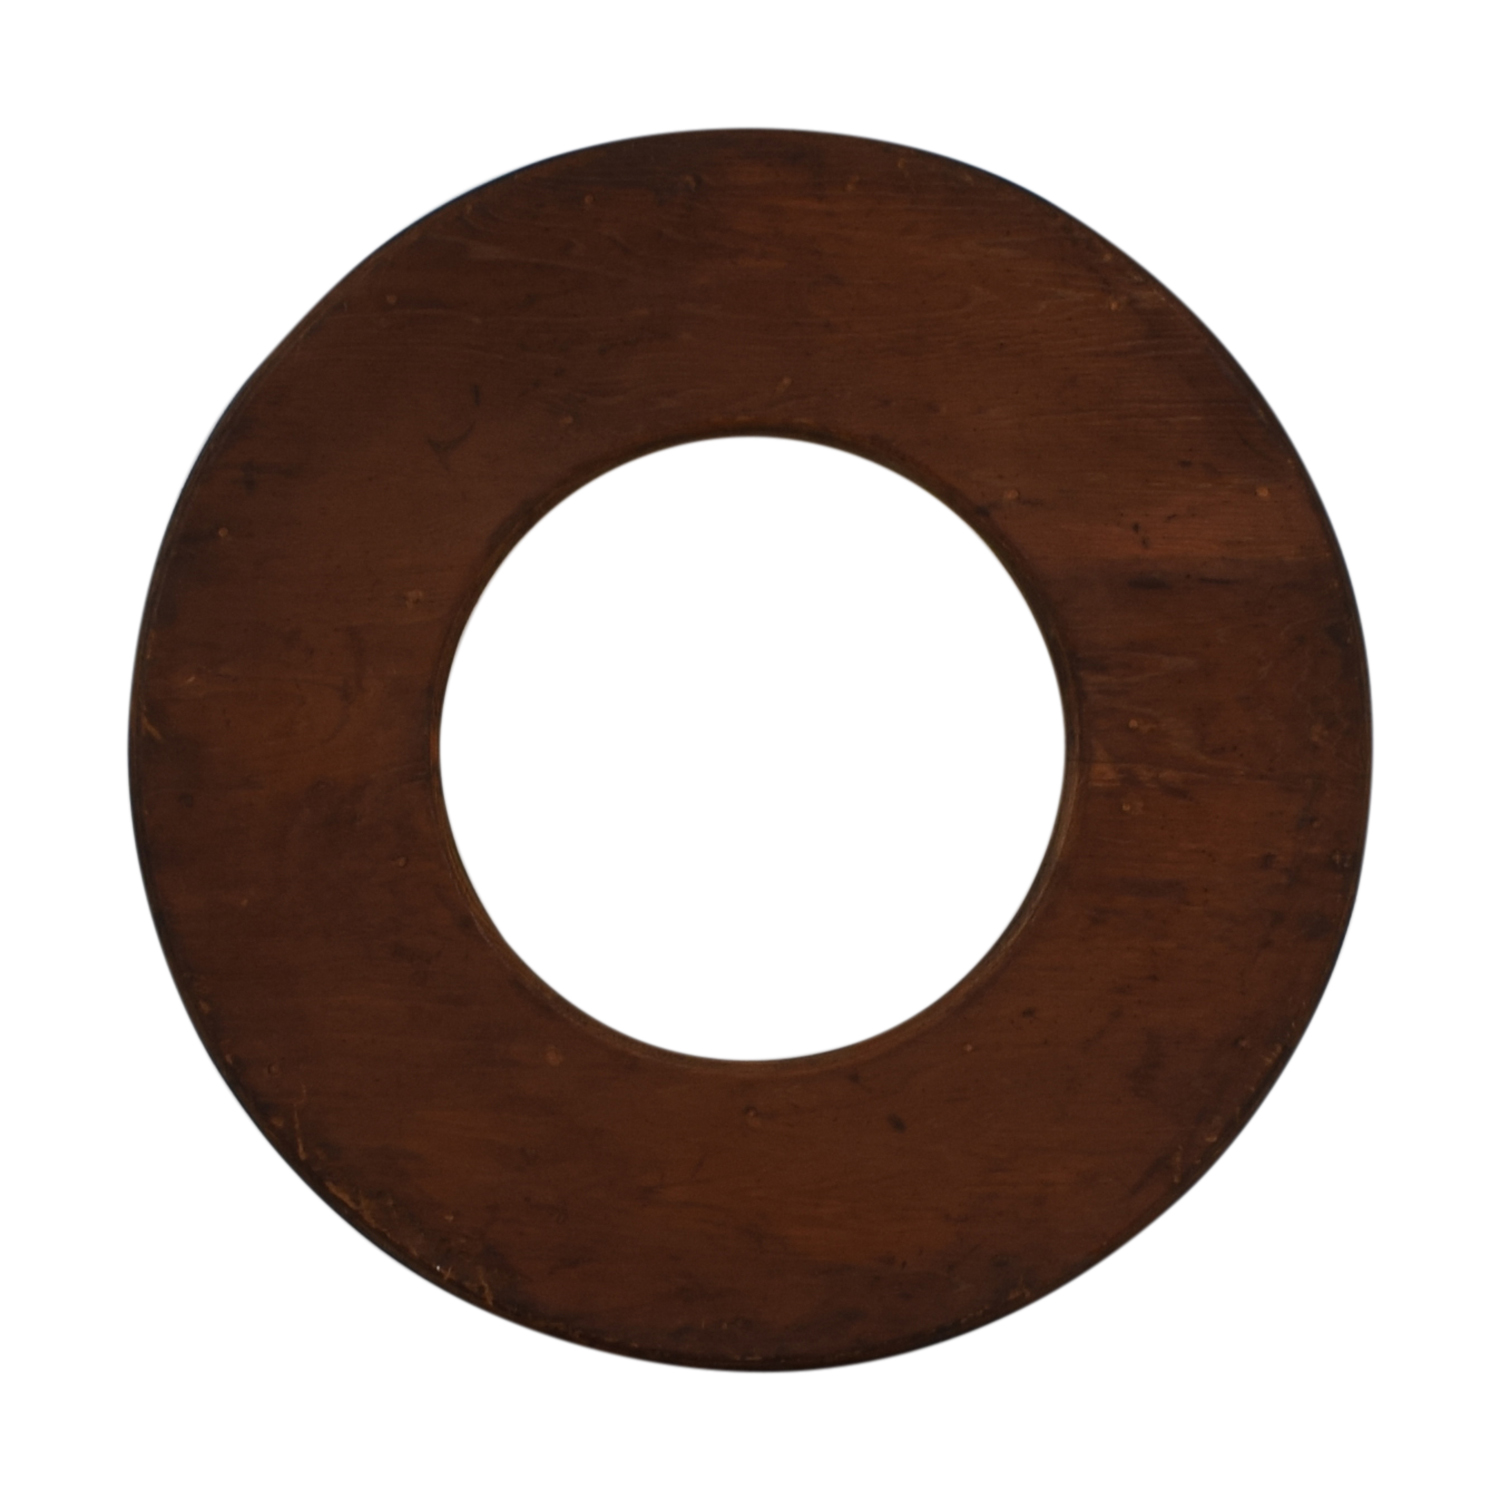 Wooden Circle Wall Hanging coupon